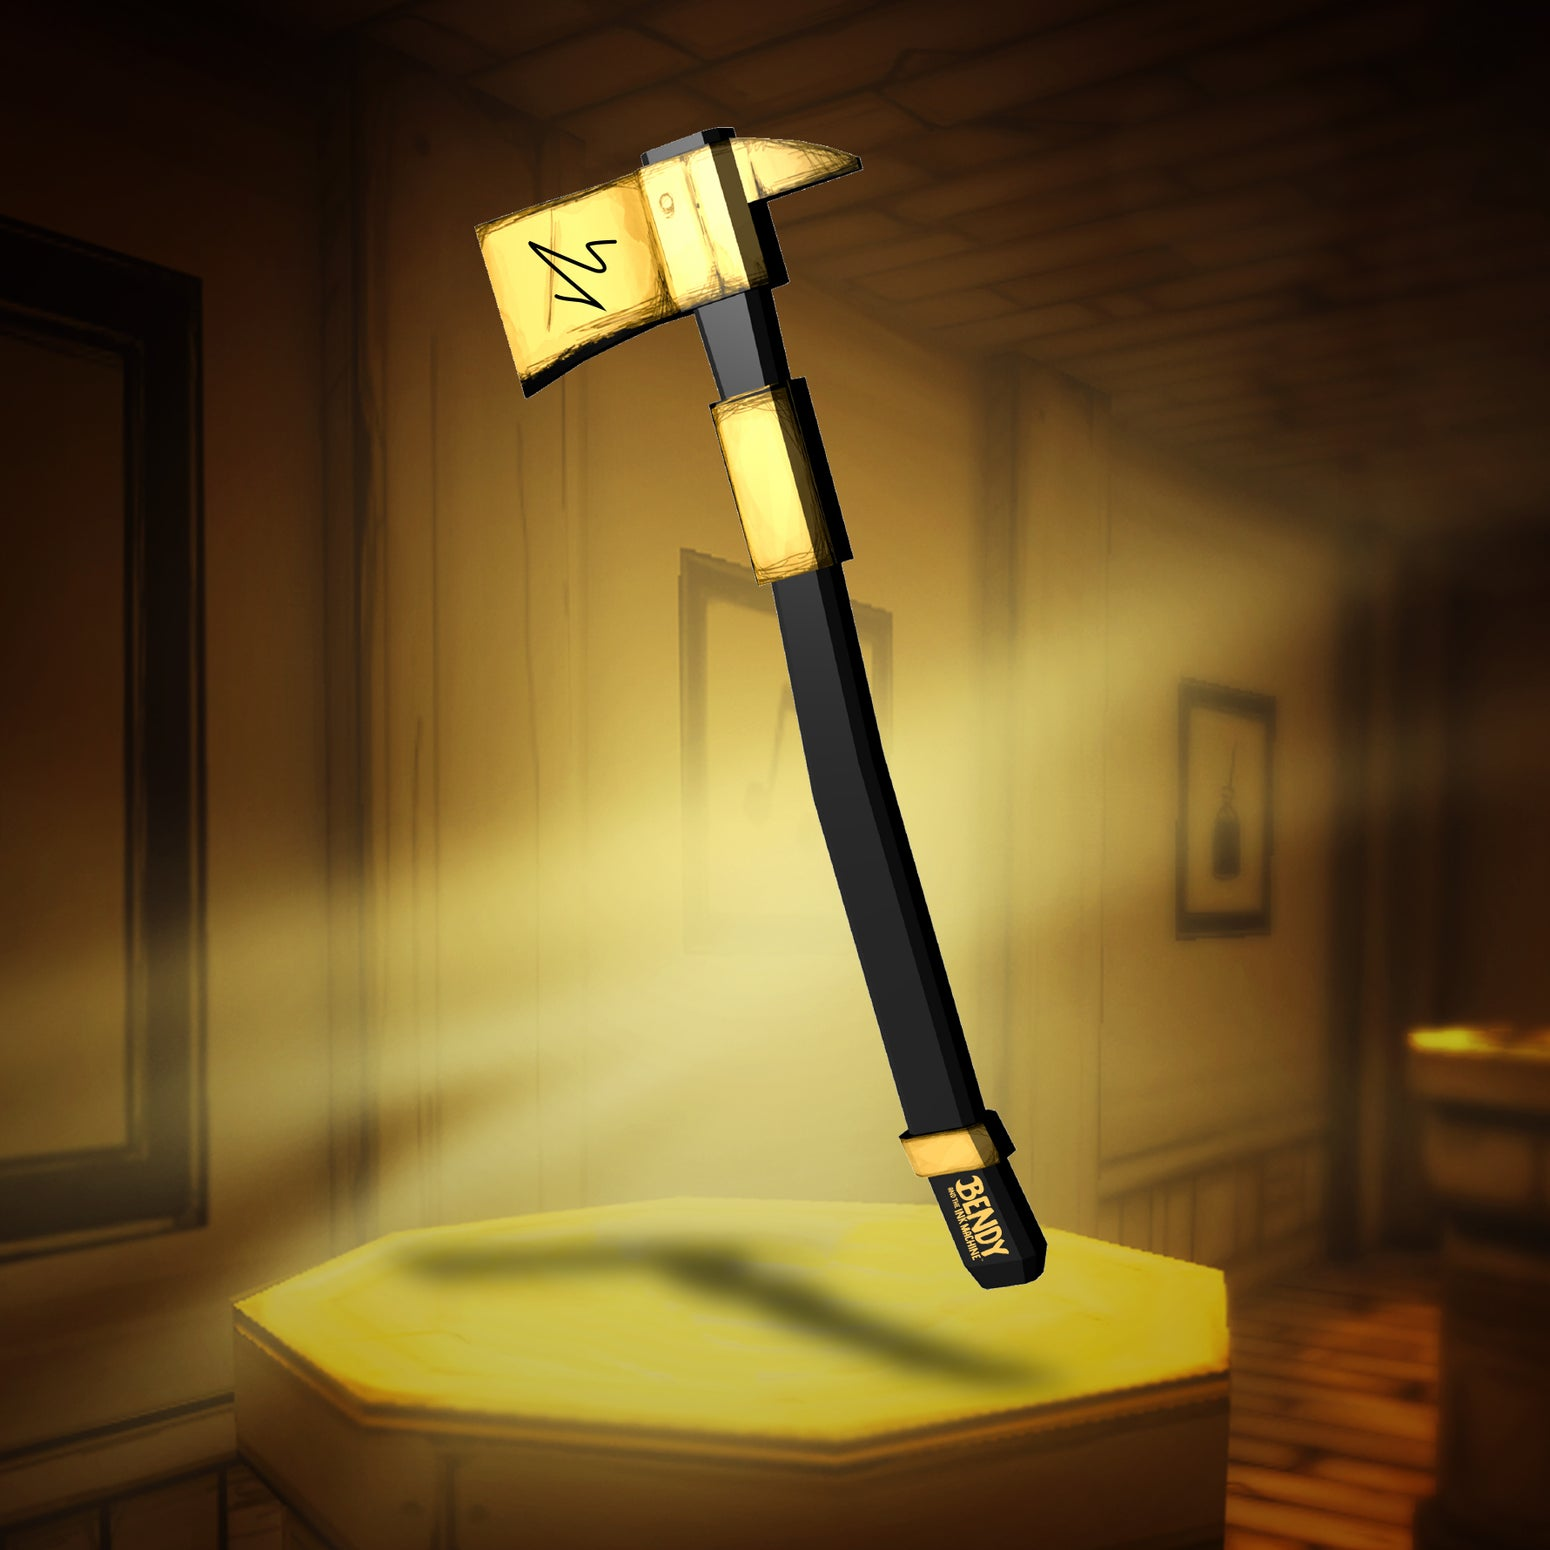 Bendy Axe